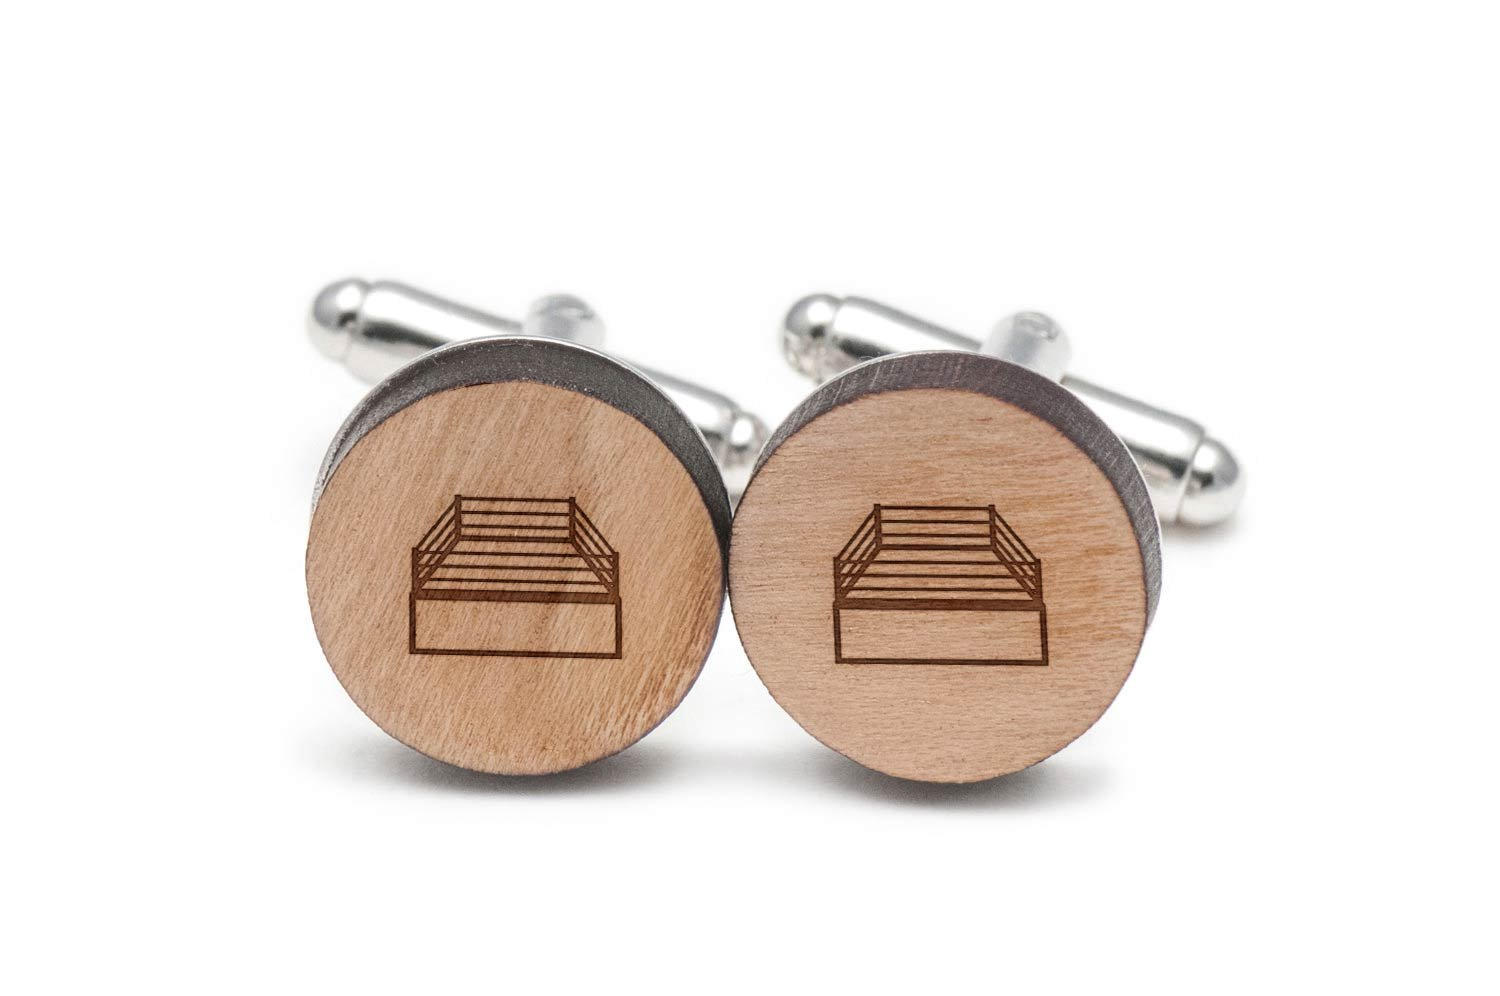 Wrestling Ring Cufflinks, Wood Cufflinks Hand Made In The Usa